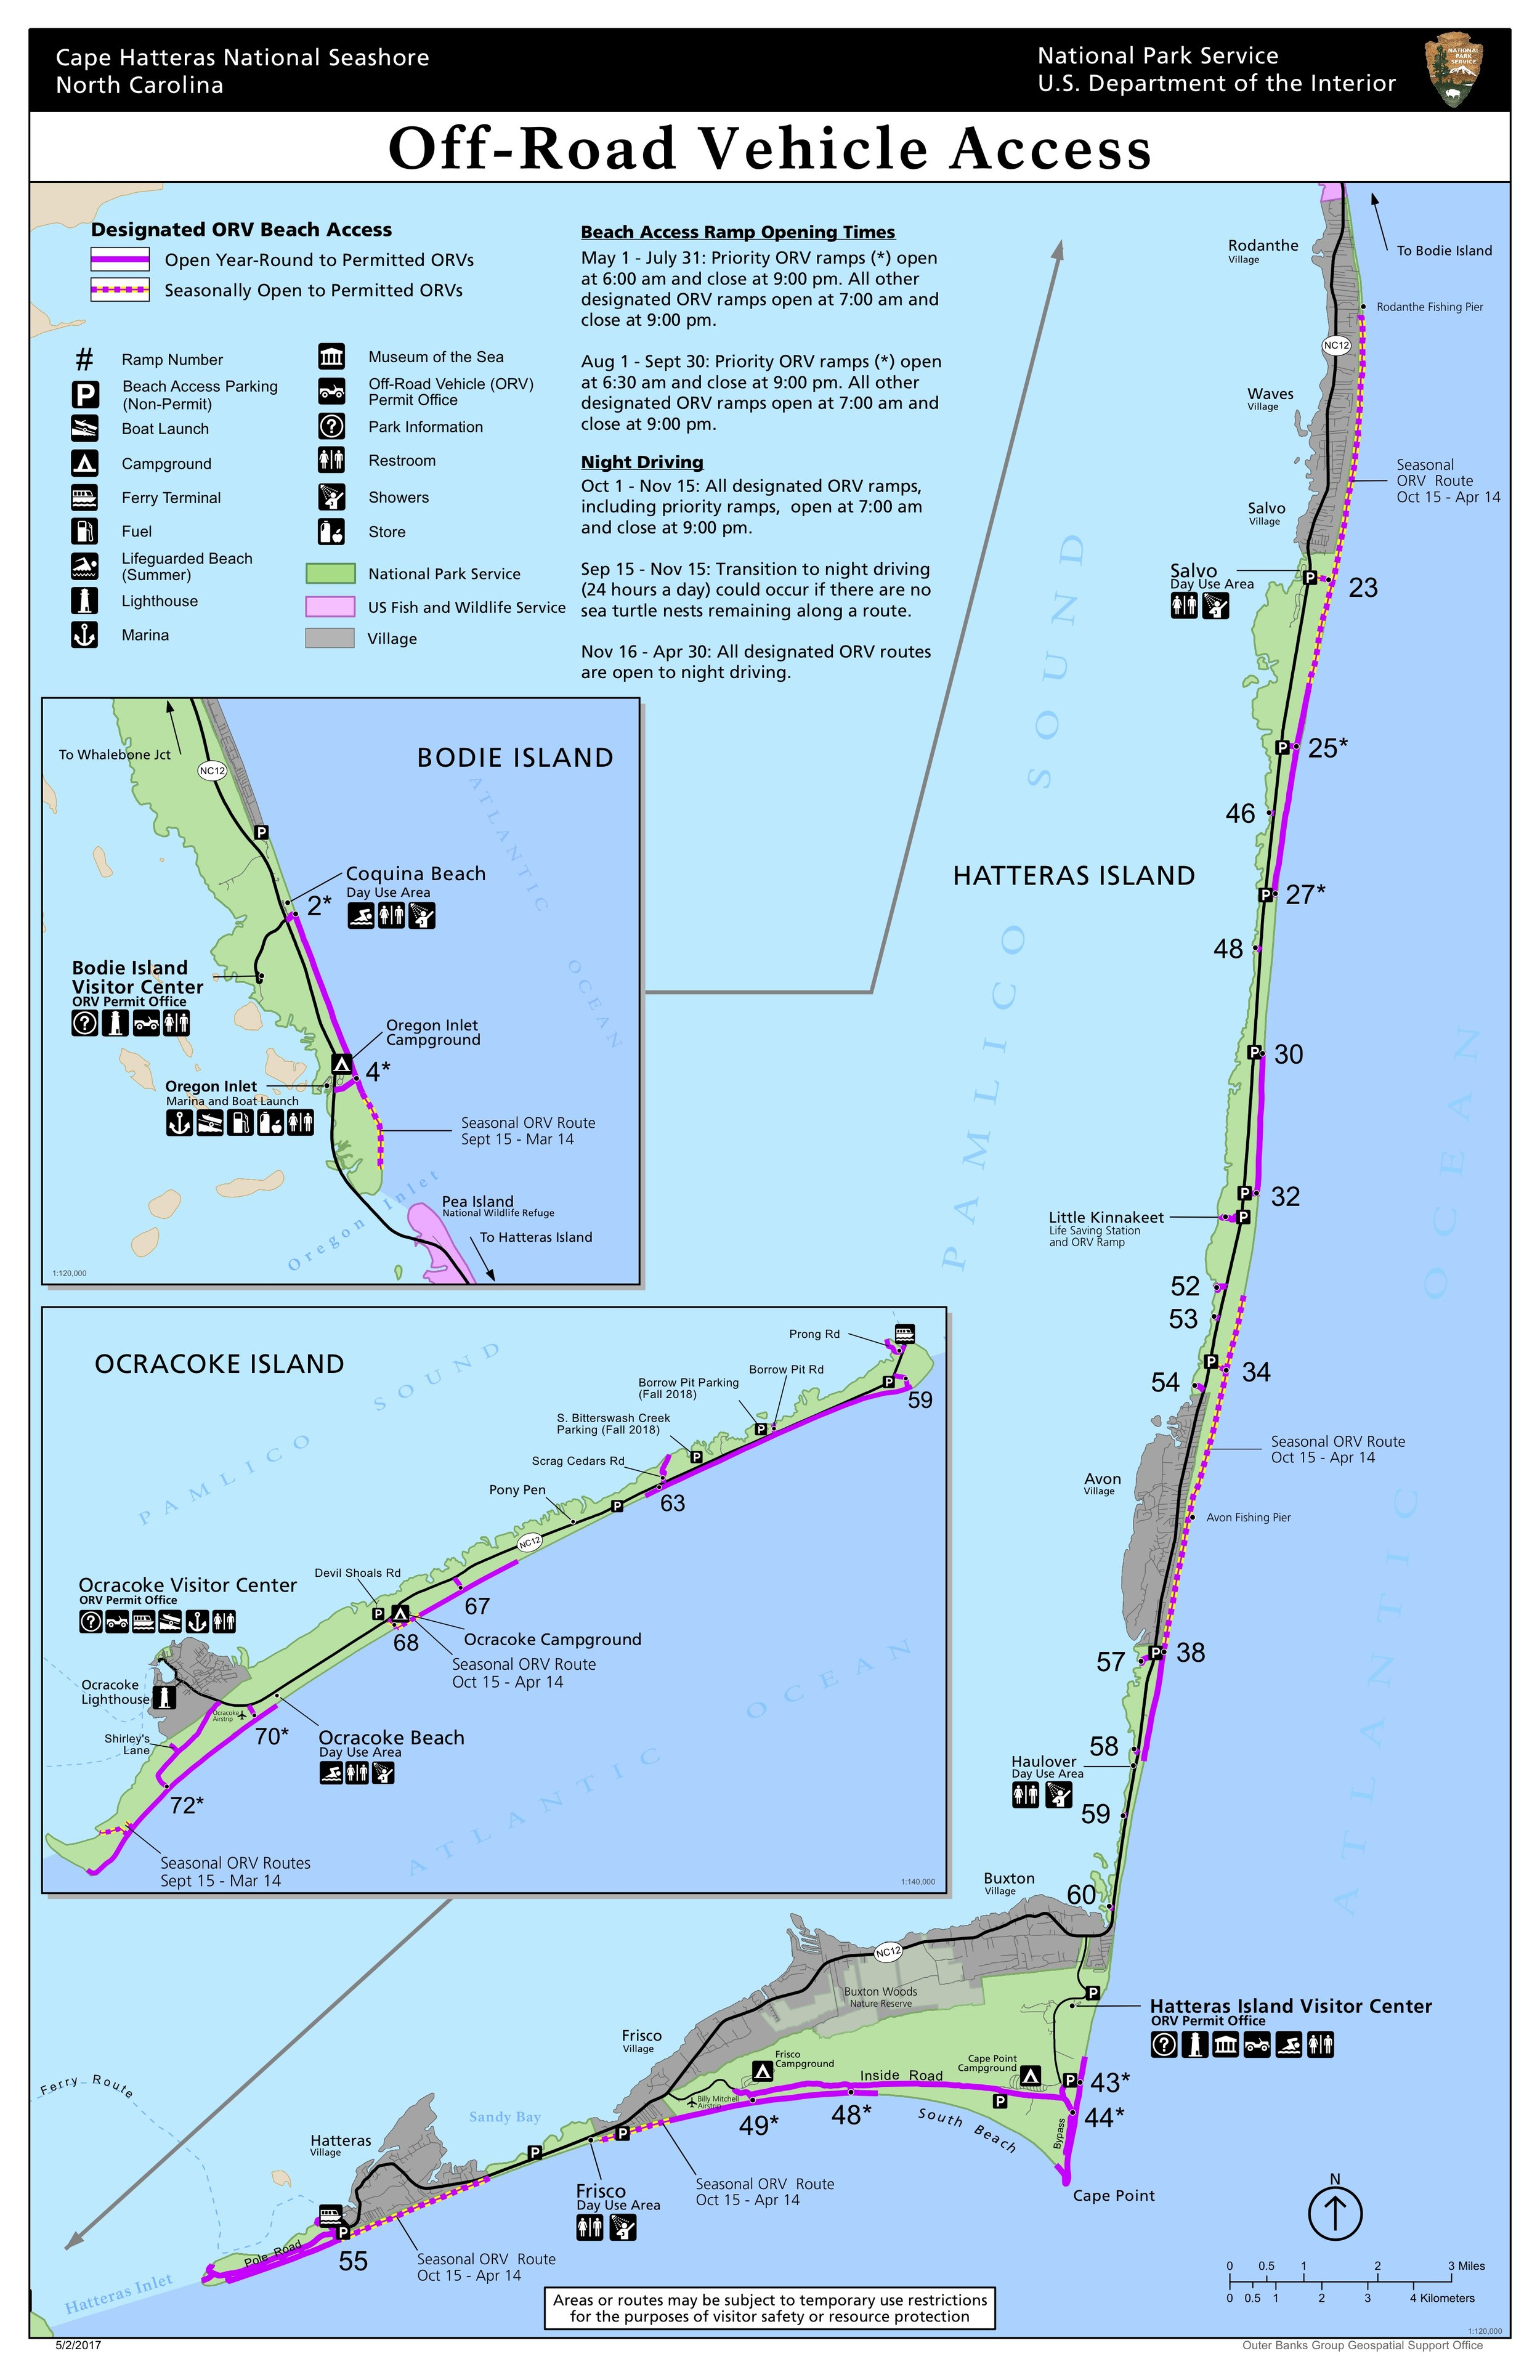 Designated beach access areas across Cape Hatteras National Seashore - National Park Service